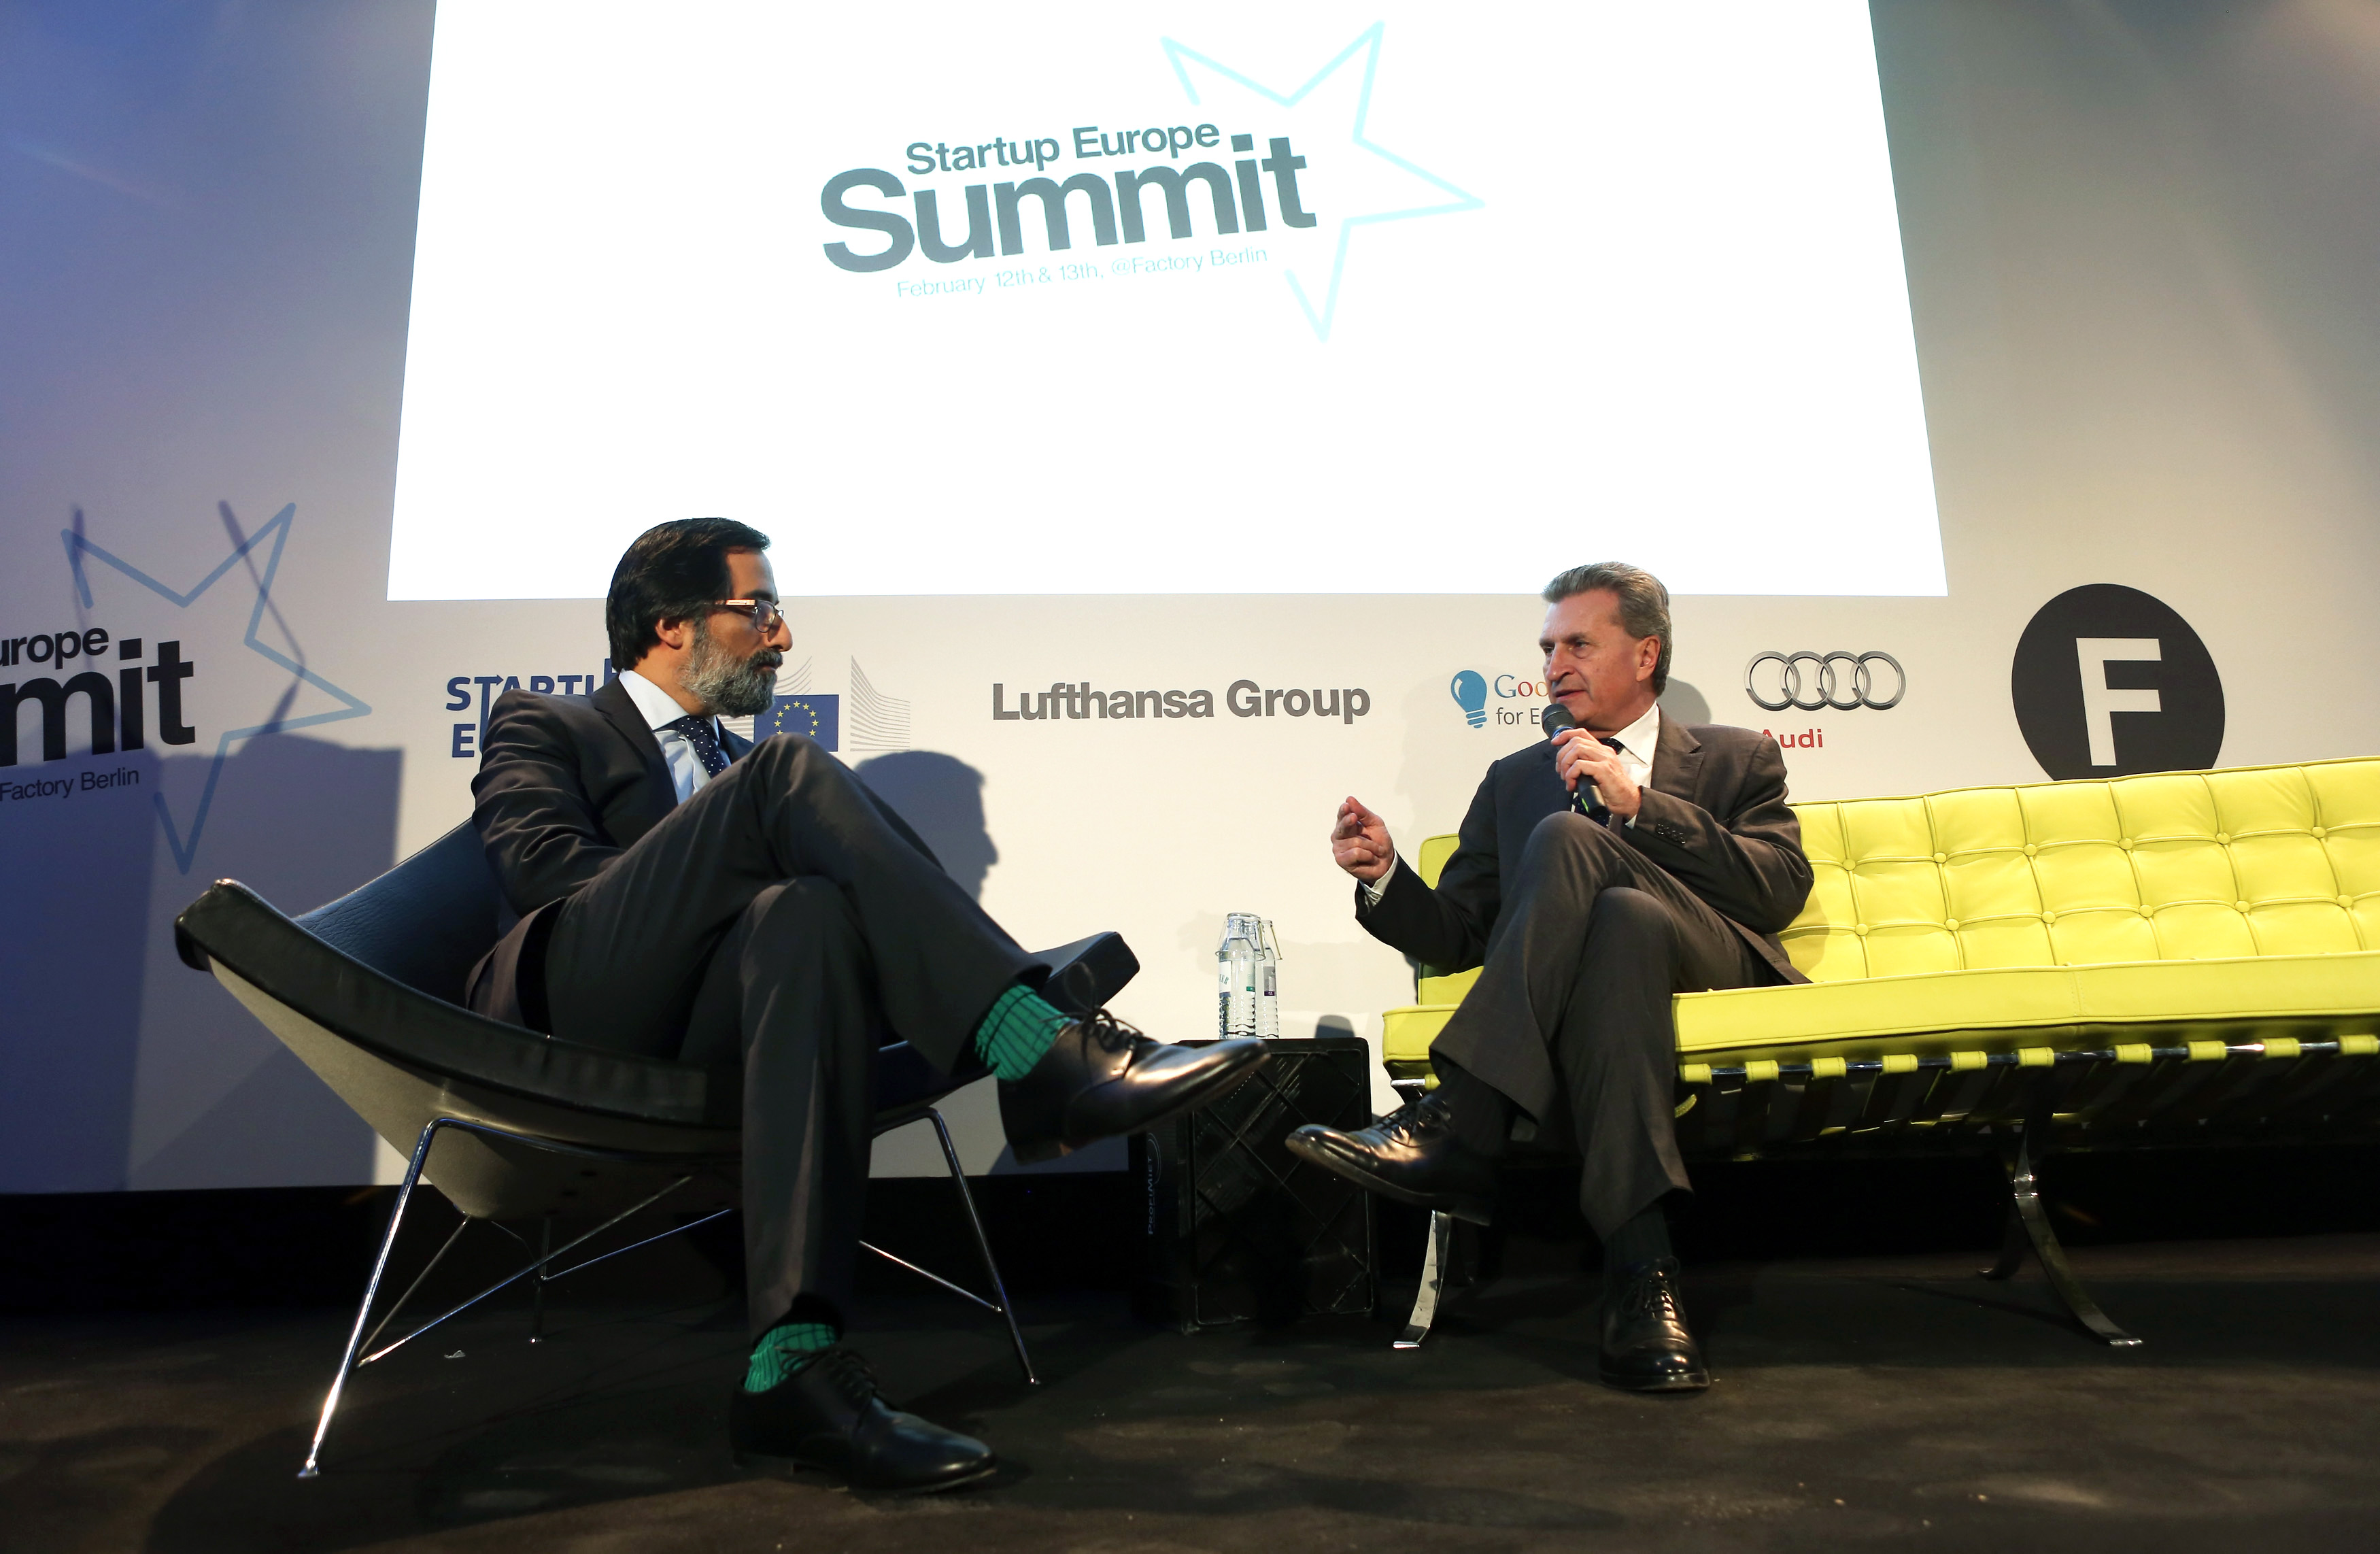 EU Commissioner Oettinger, Vice President Ansip and former Commissioner Neelie Kroes all attended the Startup Europe summit in Berlin earlier this year